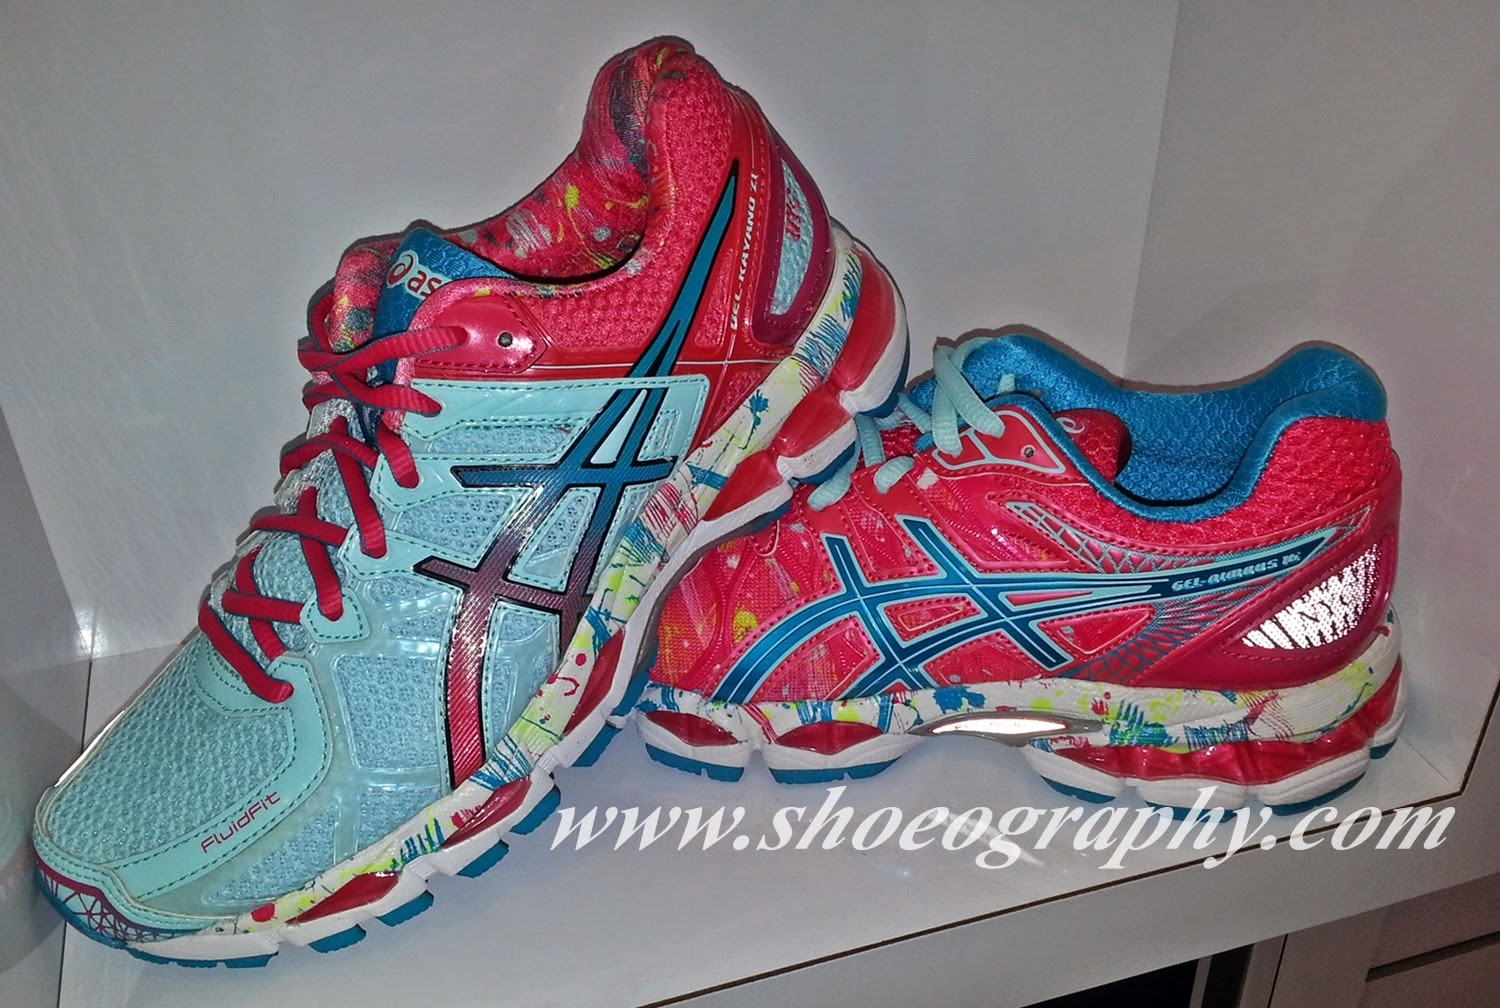 Where Can I Buy Womens Asics Gel-kayano 21 - 2014 10 Shoe Of Day Asics Gel Kayano 21 Nyc Gel